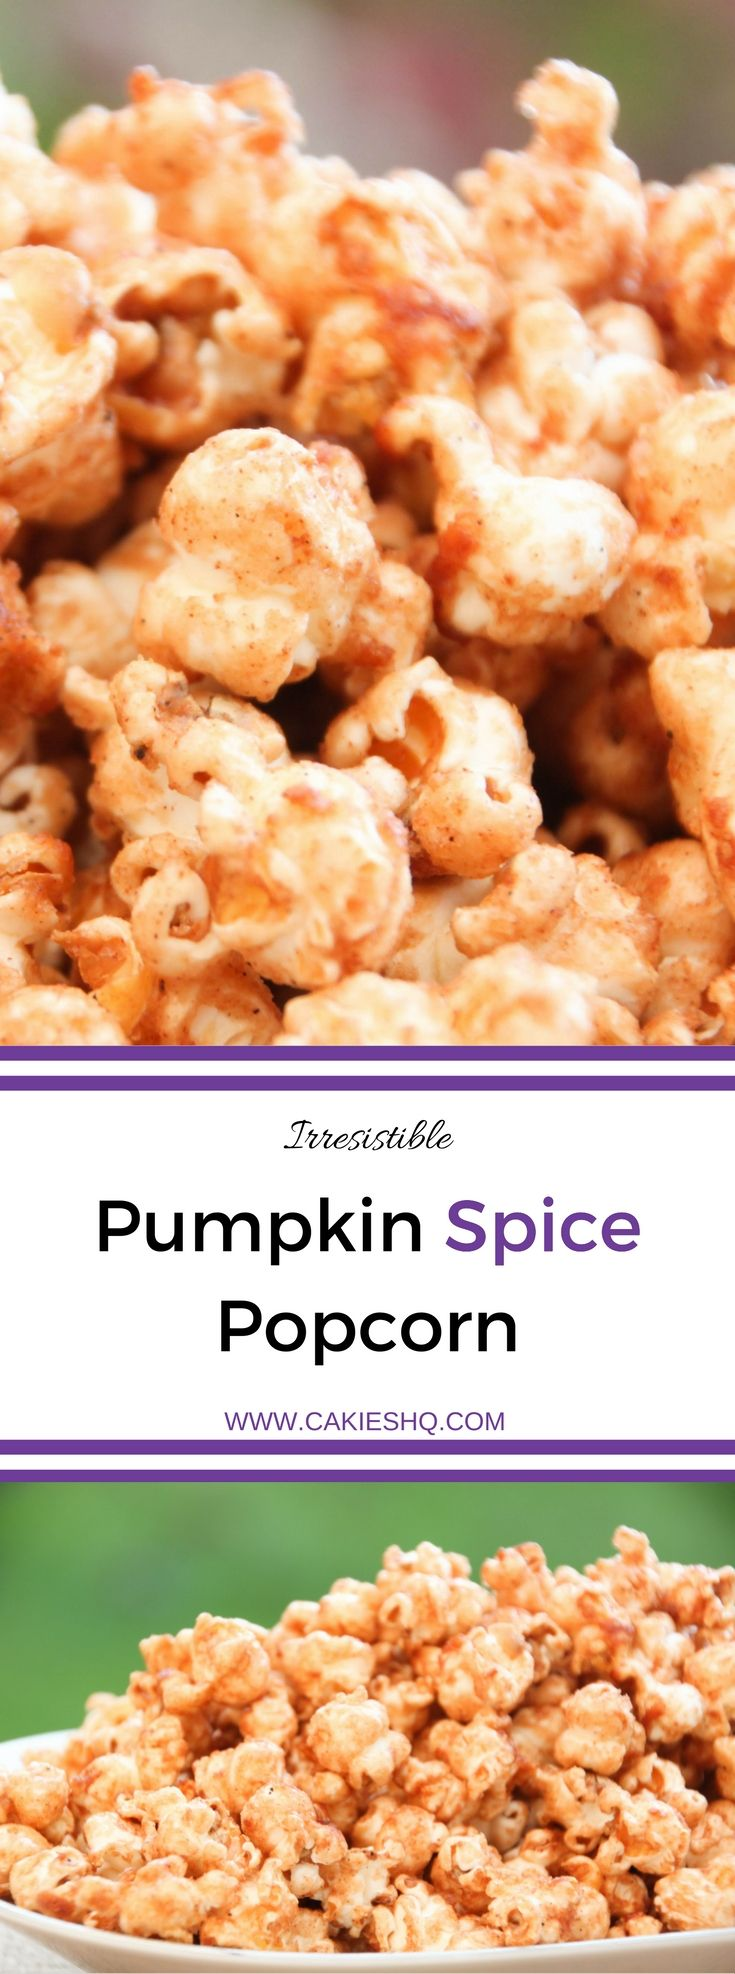 Pumpkin Spice Popcorn (Speculaas Popcorn) is the perfect snack for the fall and winter. This recipe is super delicious and easy to make. An irresistible pumpkin spice / speculaas spice snack.